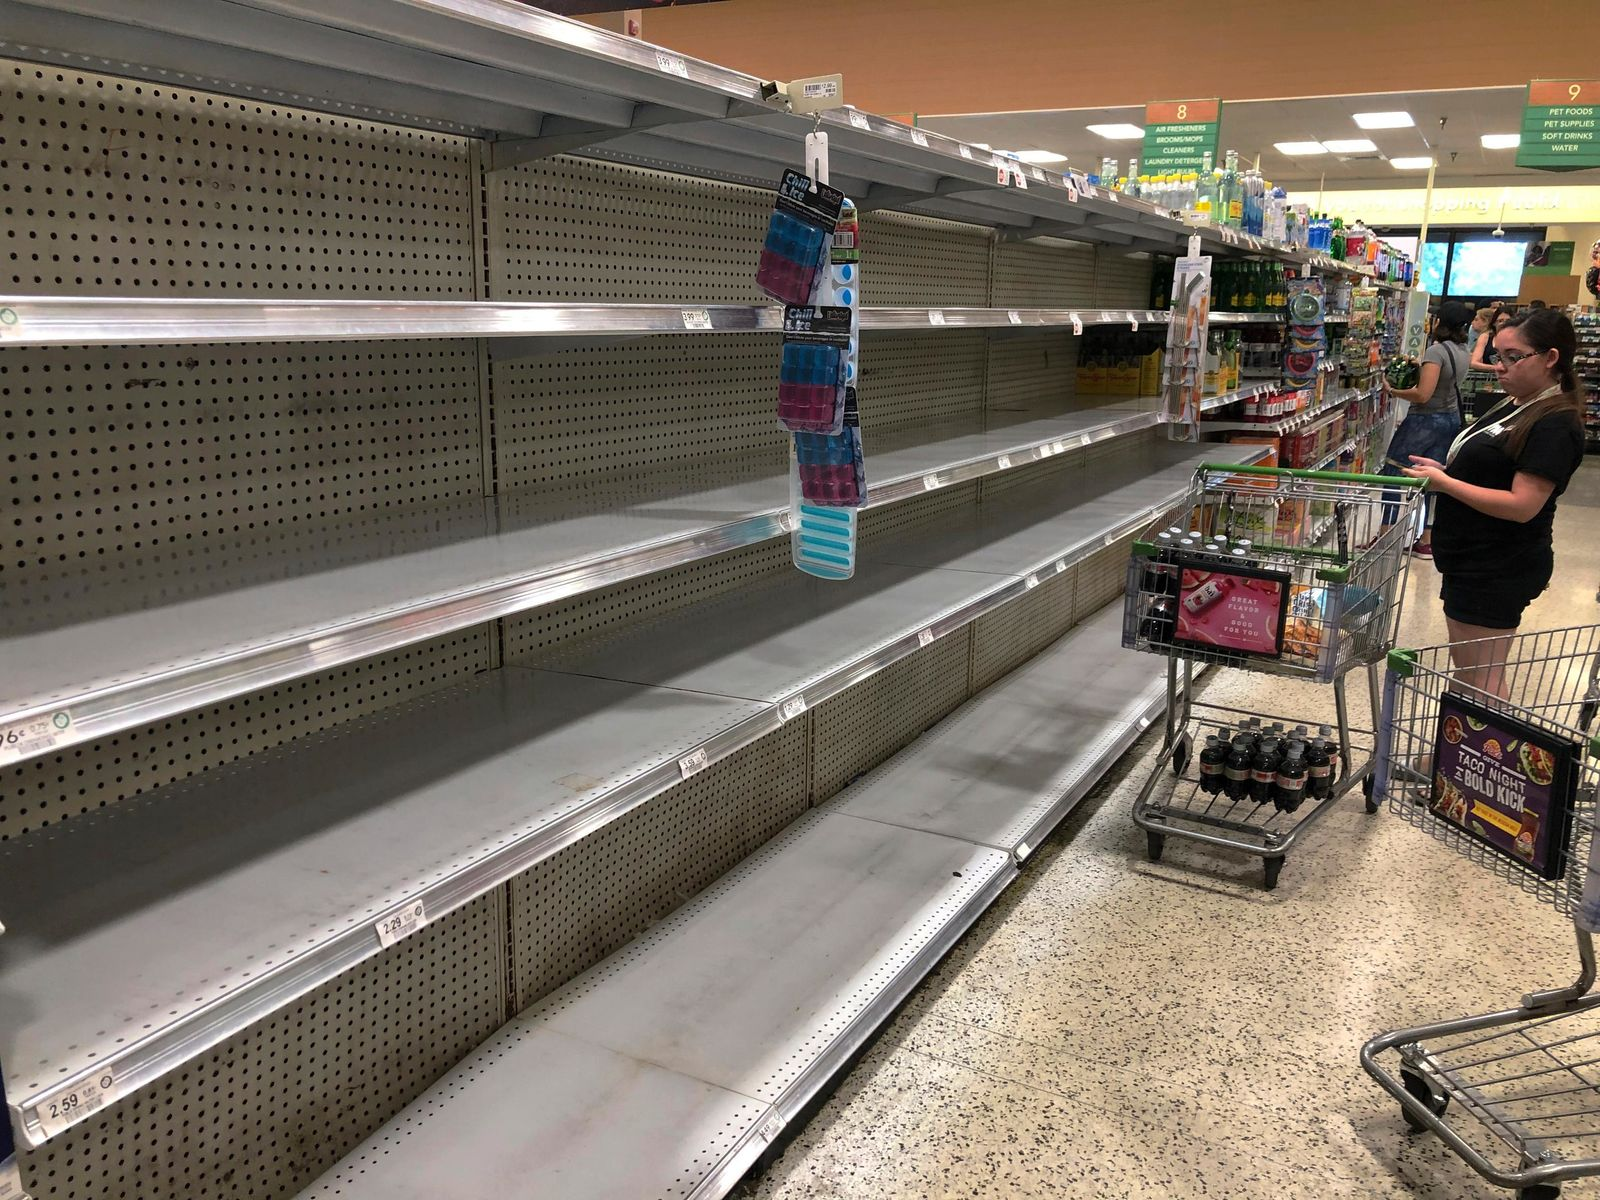 Store shelves are empty of bottled water as residents buy supplies in preparation for Hurricane Dorian,  in Doral, Fla., Thursday, July 29, 2019.  The U.S. National Hurricane Center says Dorian could hit the Florida coast over the weekend as a major hurricane. (AP Photo/Marcus Lim)